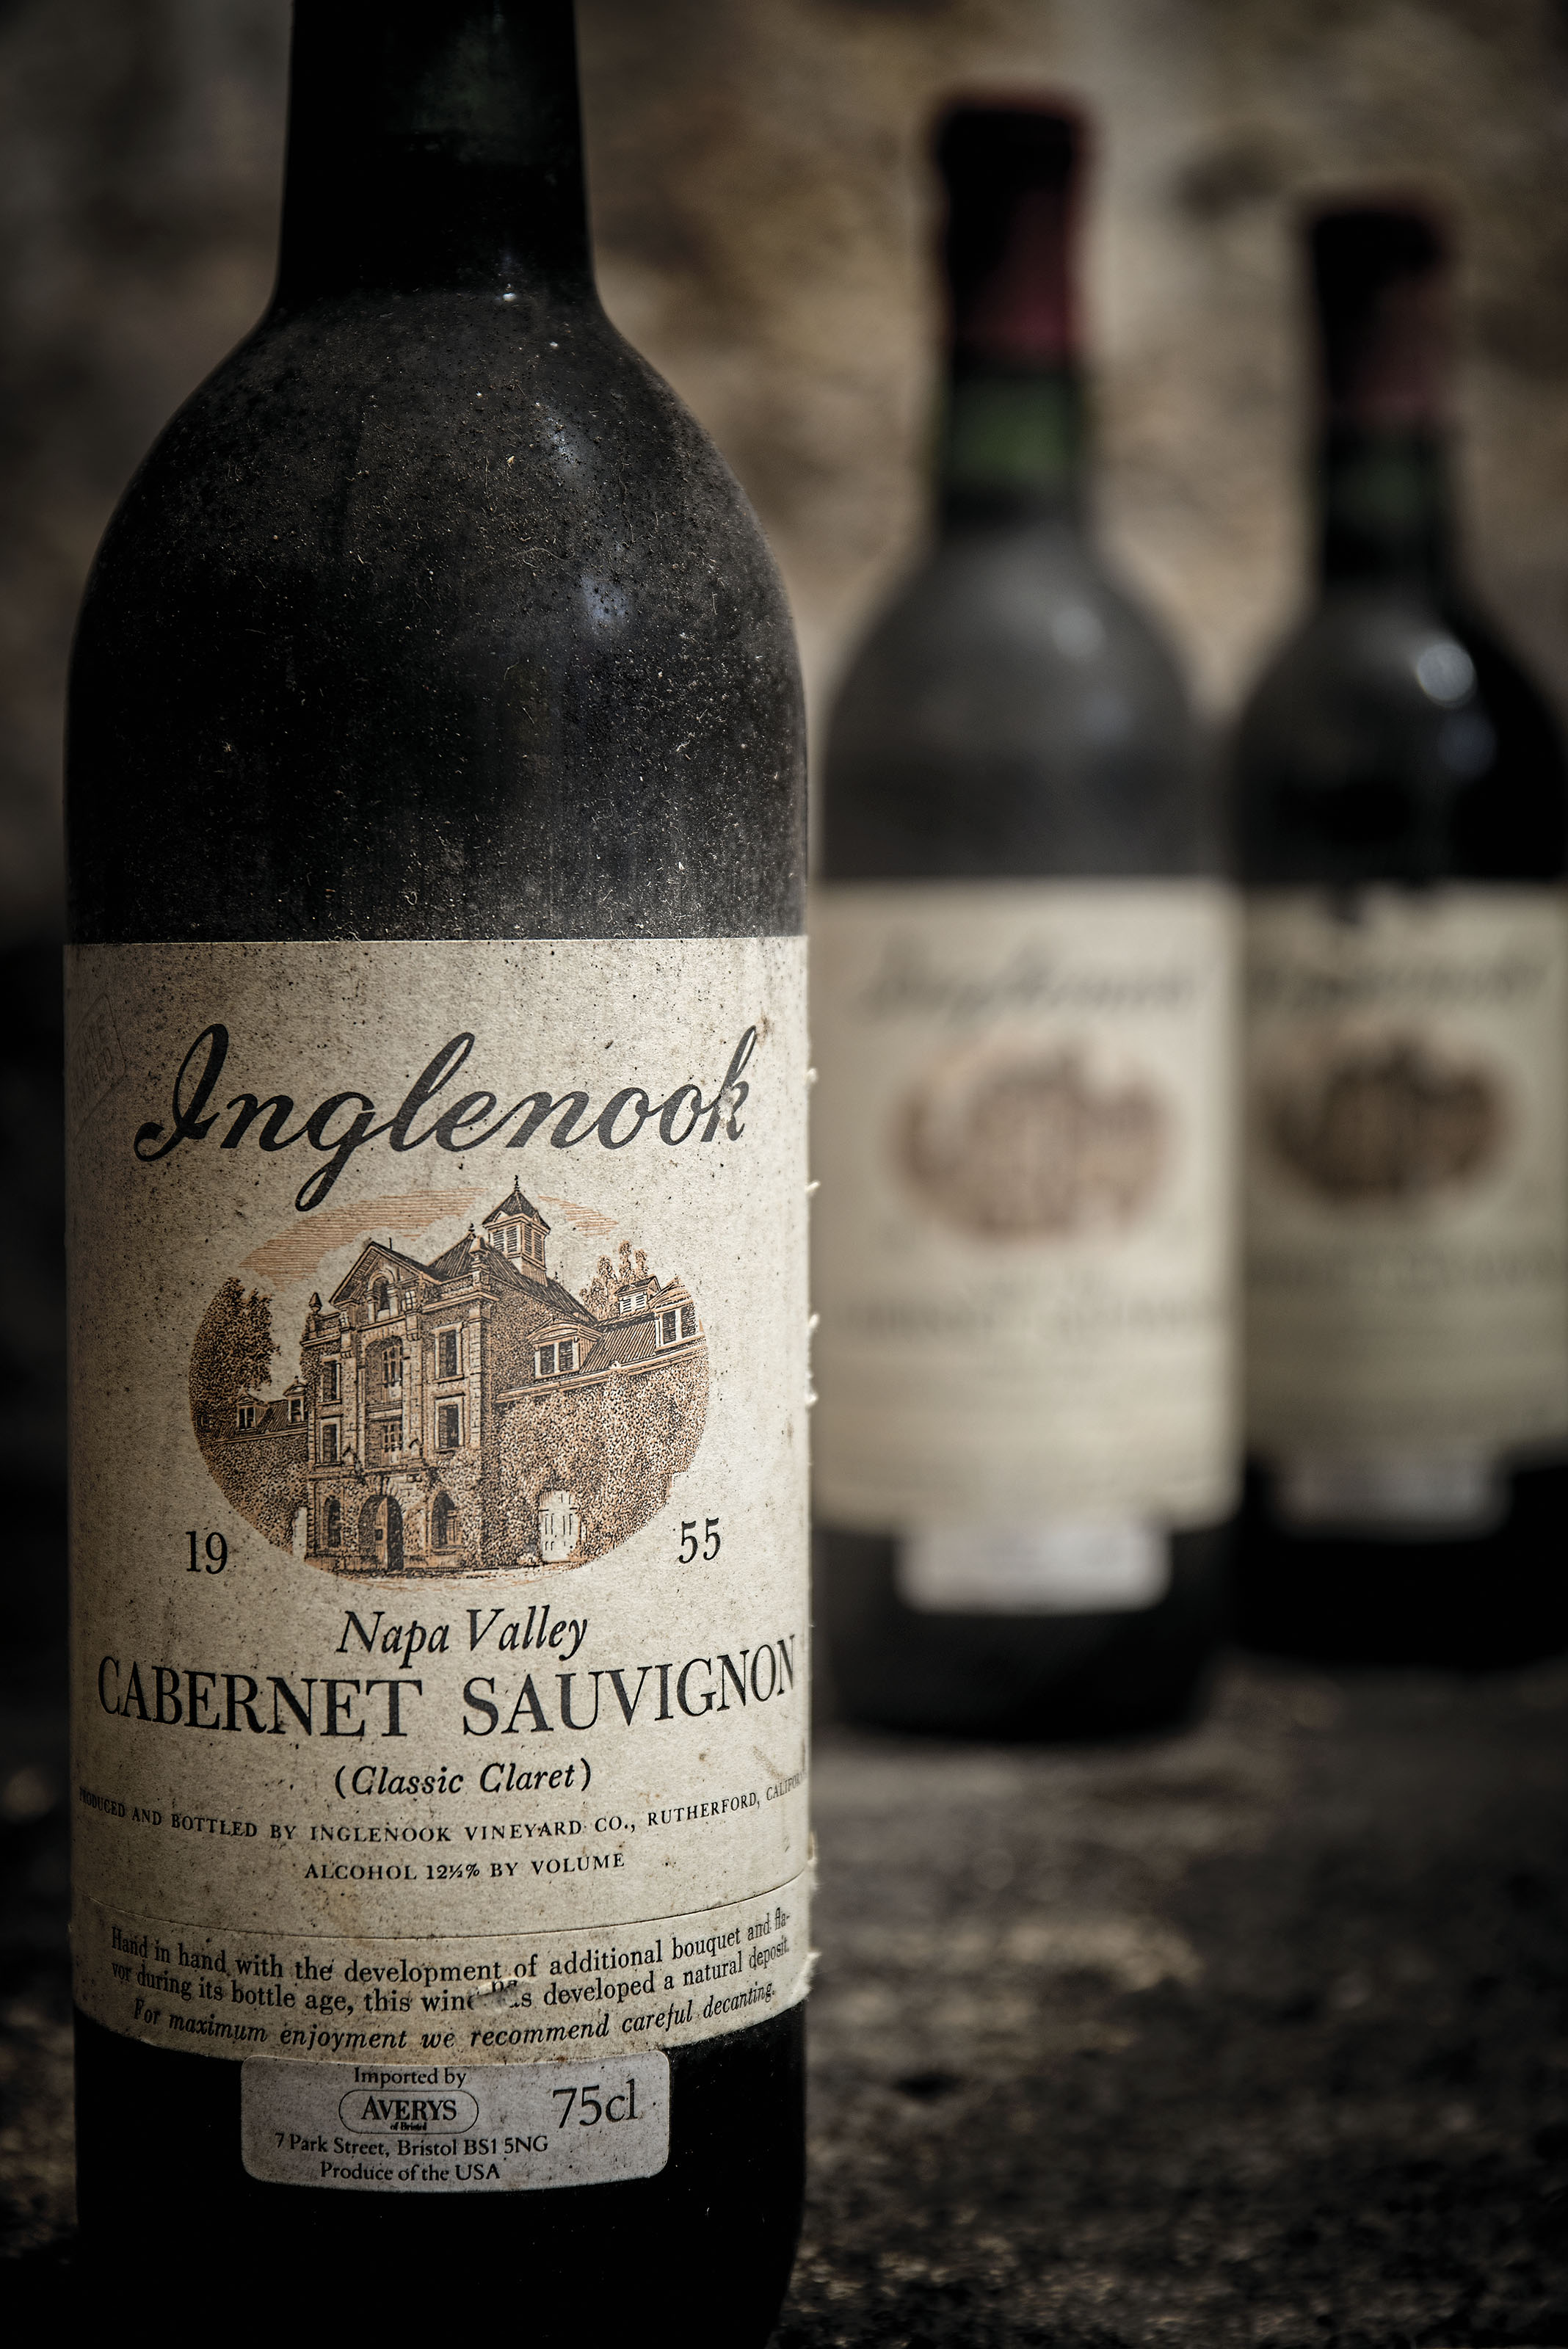 Inglenook, Cabernet Sauvignon 'Classic Claret' 1955 Embossed metal capsules, slightly corroded. Bin-soiled and slightly damaged labels. Level into-neck  (3) Beaulieu Vineyard, Cabernet Sauvignon 1968 Corroded capsules. Bin-soiled labels, damaged back labels. Levels base of neck or better  half (8)